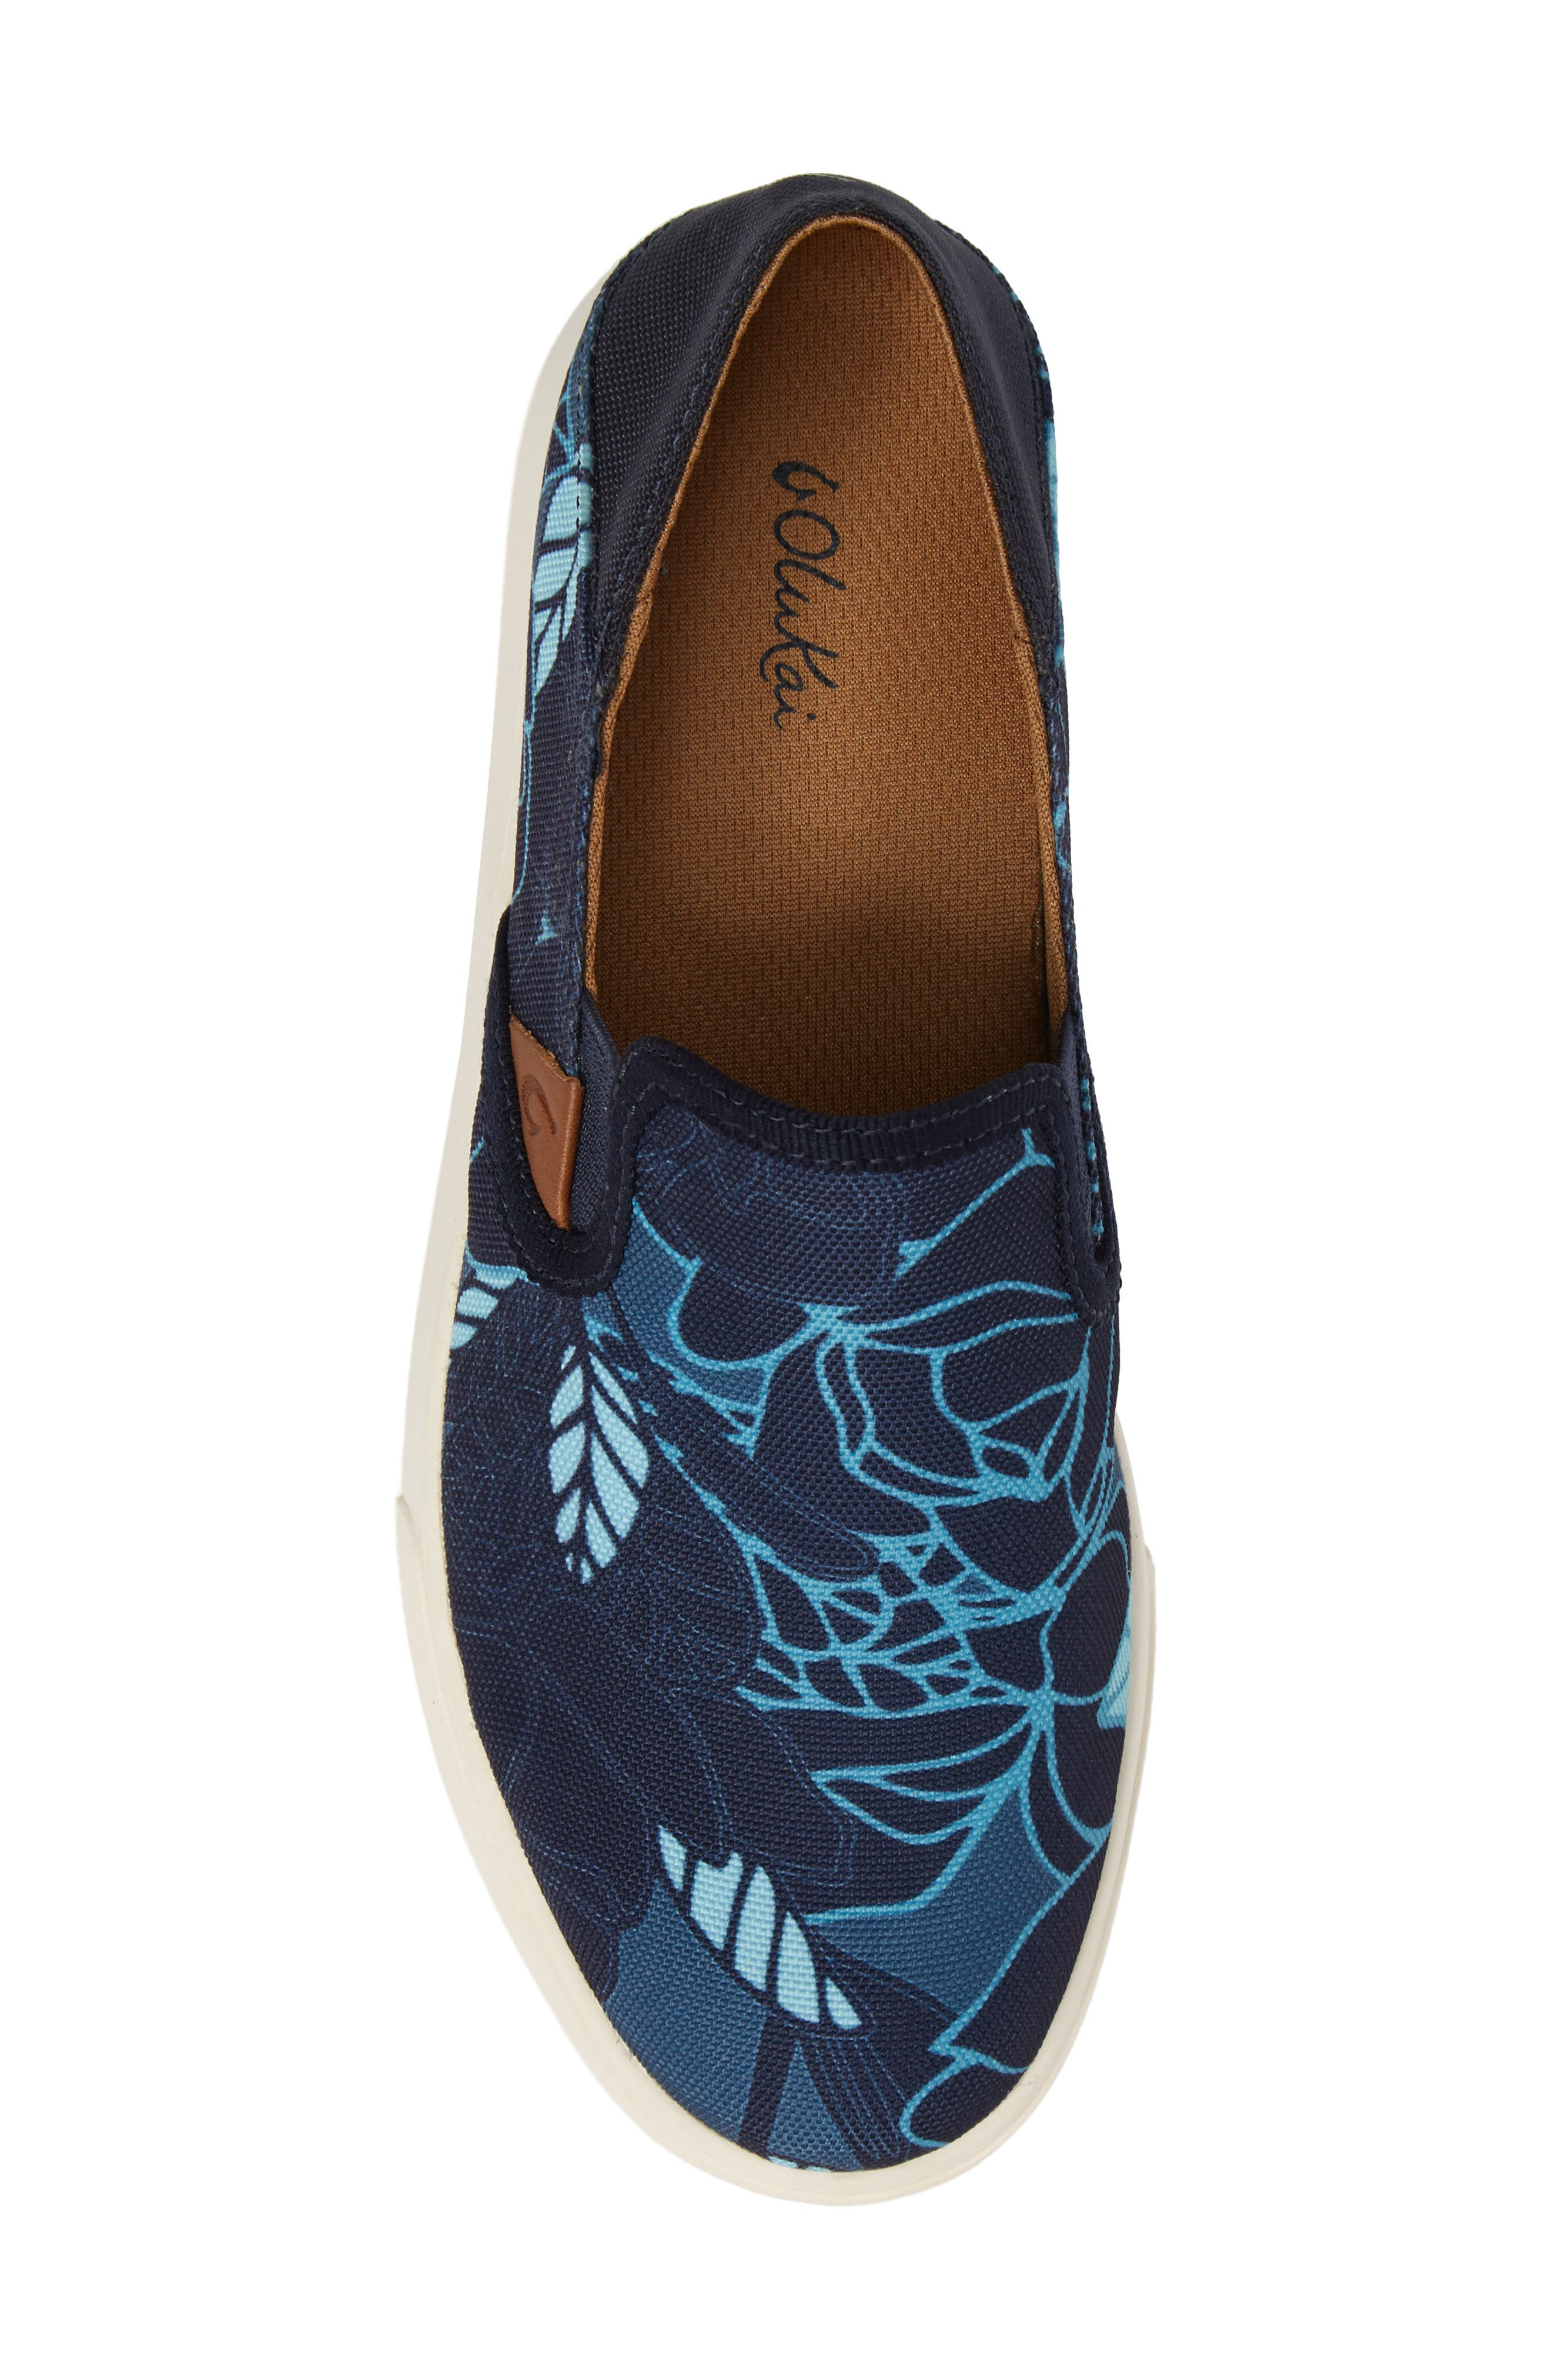 Pehuea Print Slip-On Sneaker,                             Alternate thumbnail 5, color,                             TRENCH BLUE/ STORMY BLUE